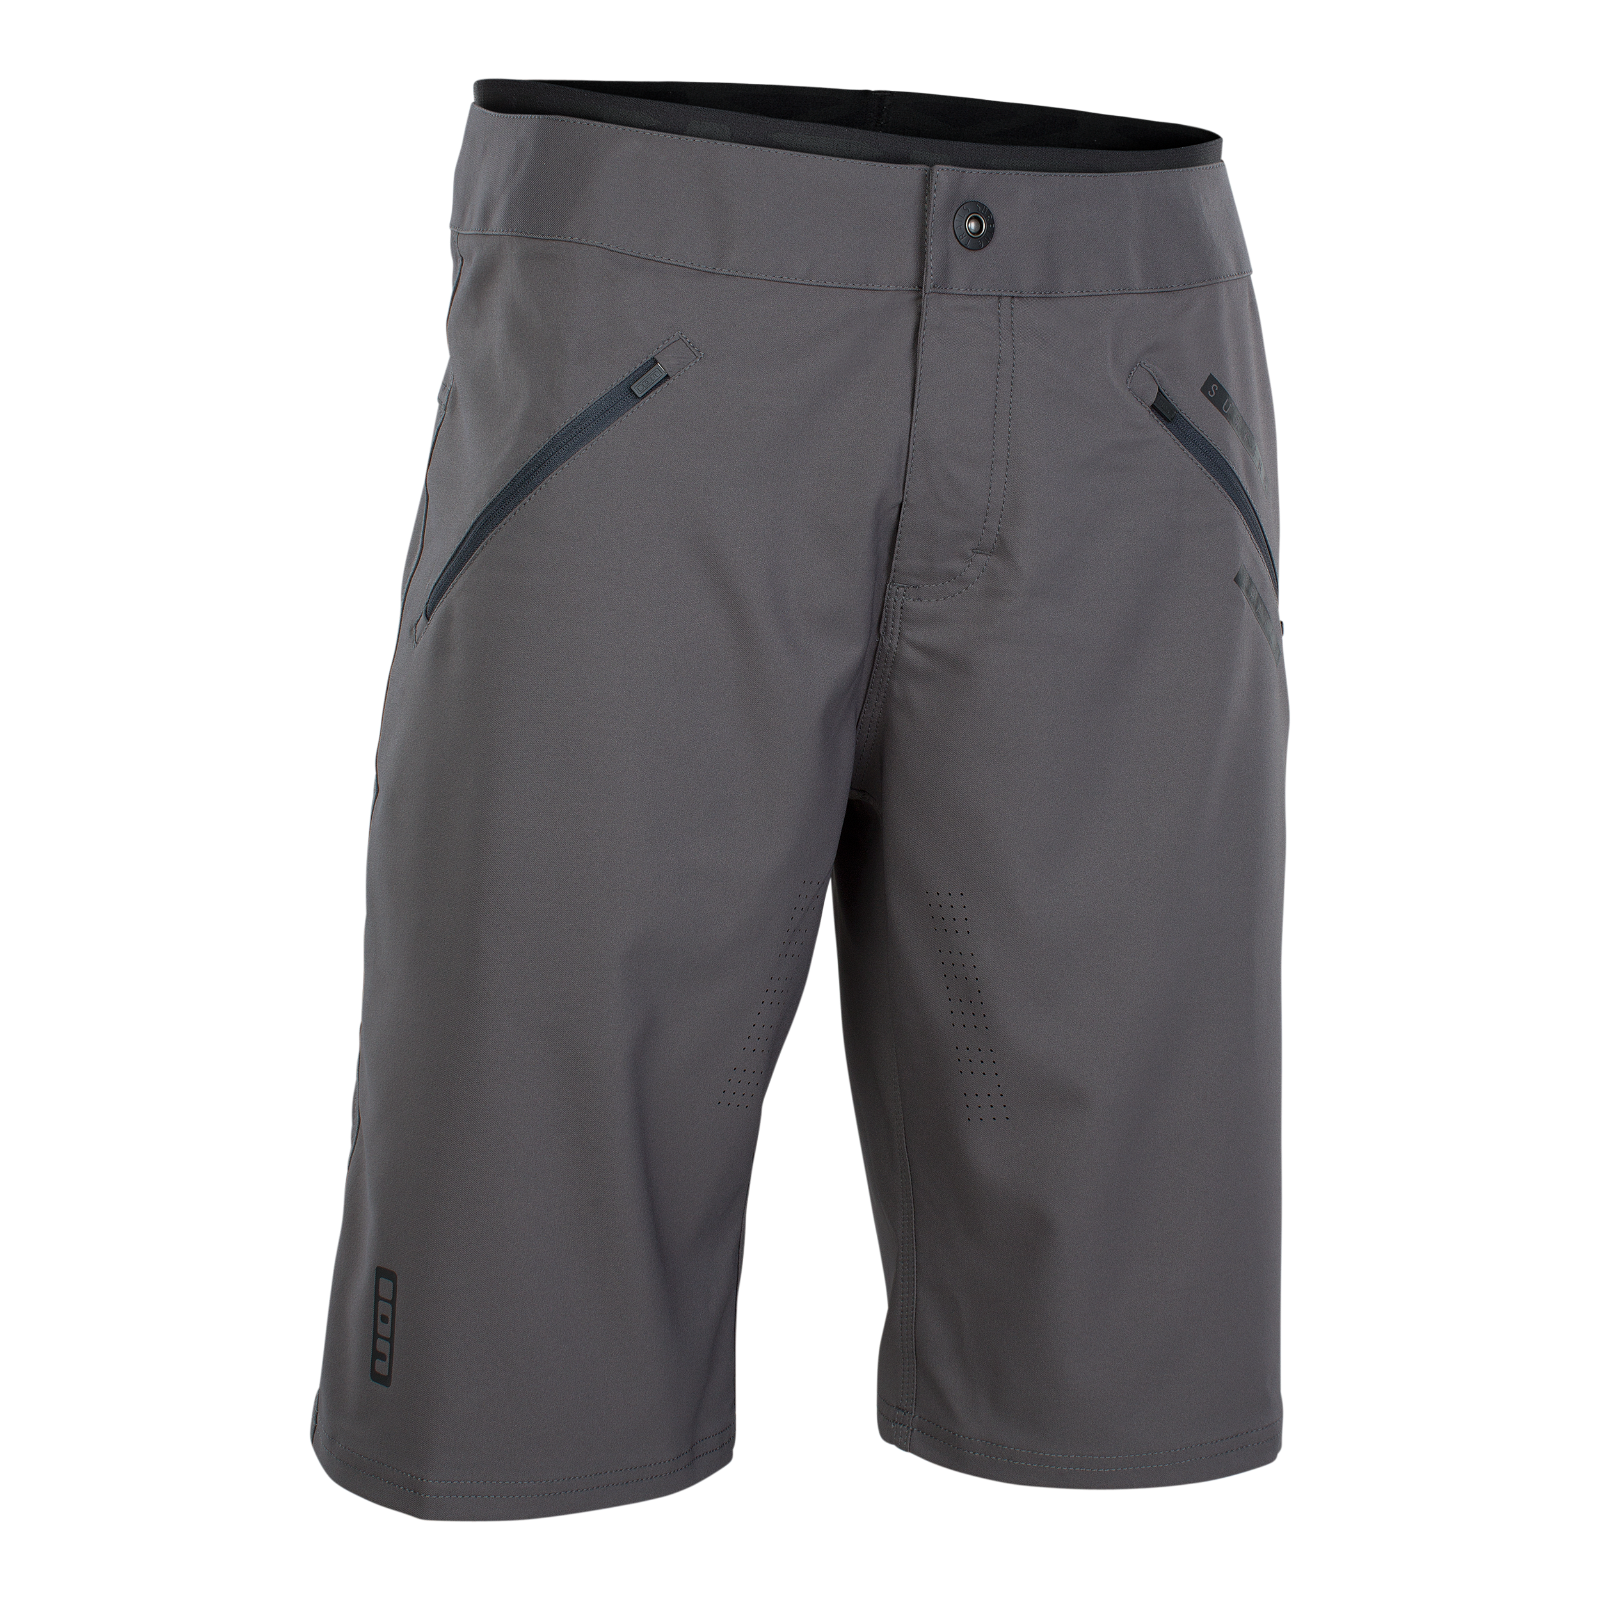 Details about  /ION Cycling Shorts Bike Shorts Traze Plus